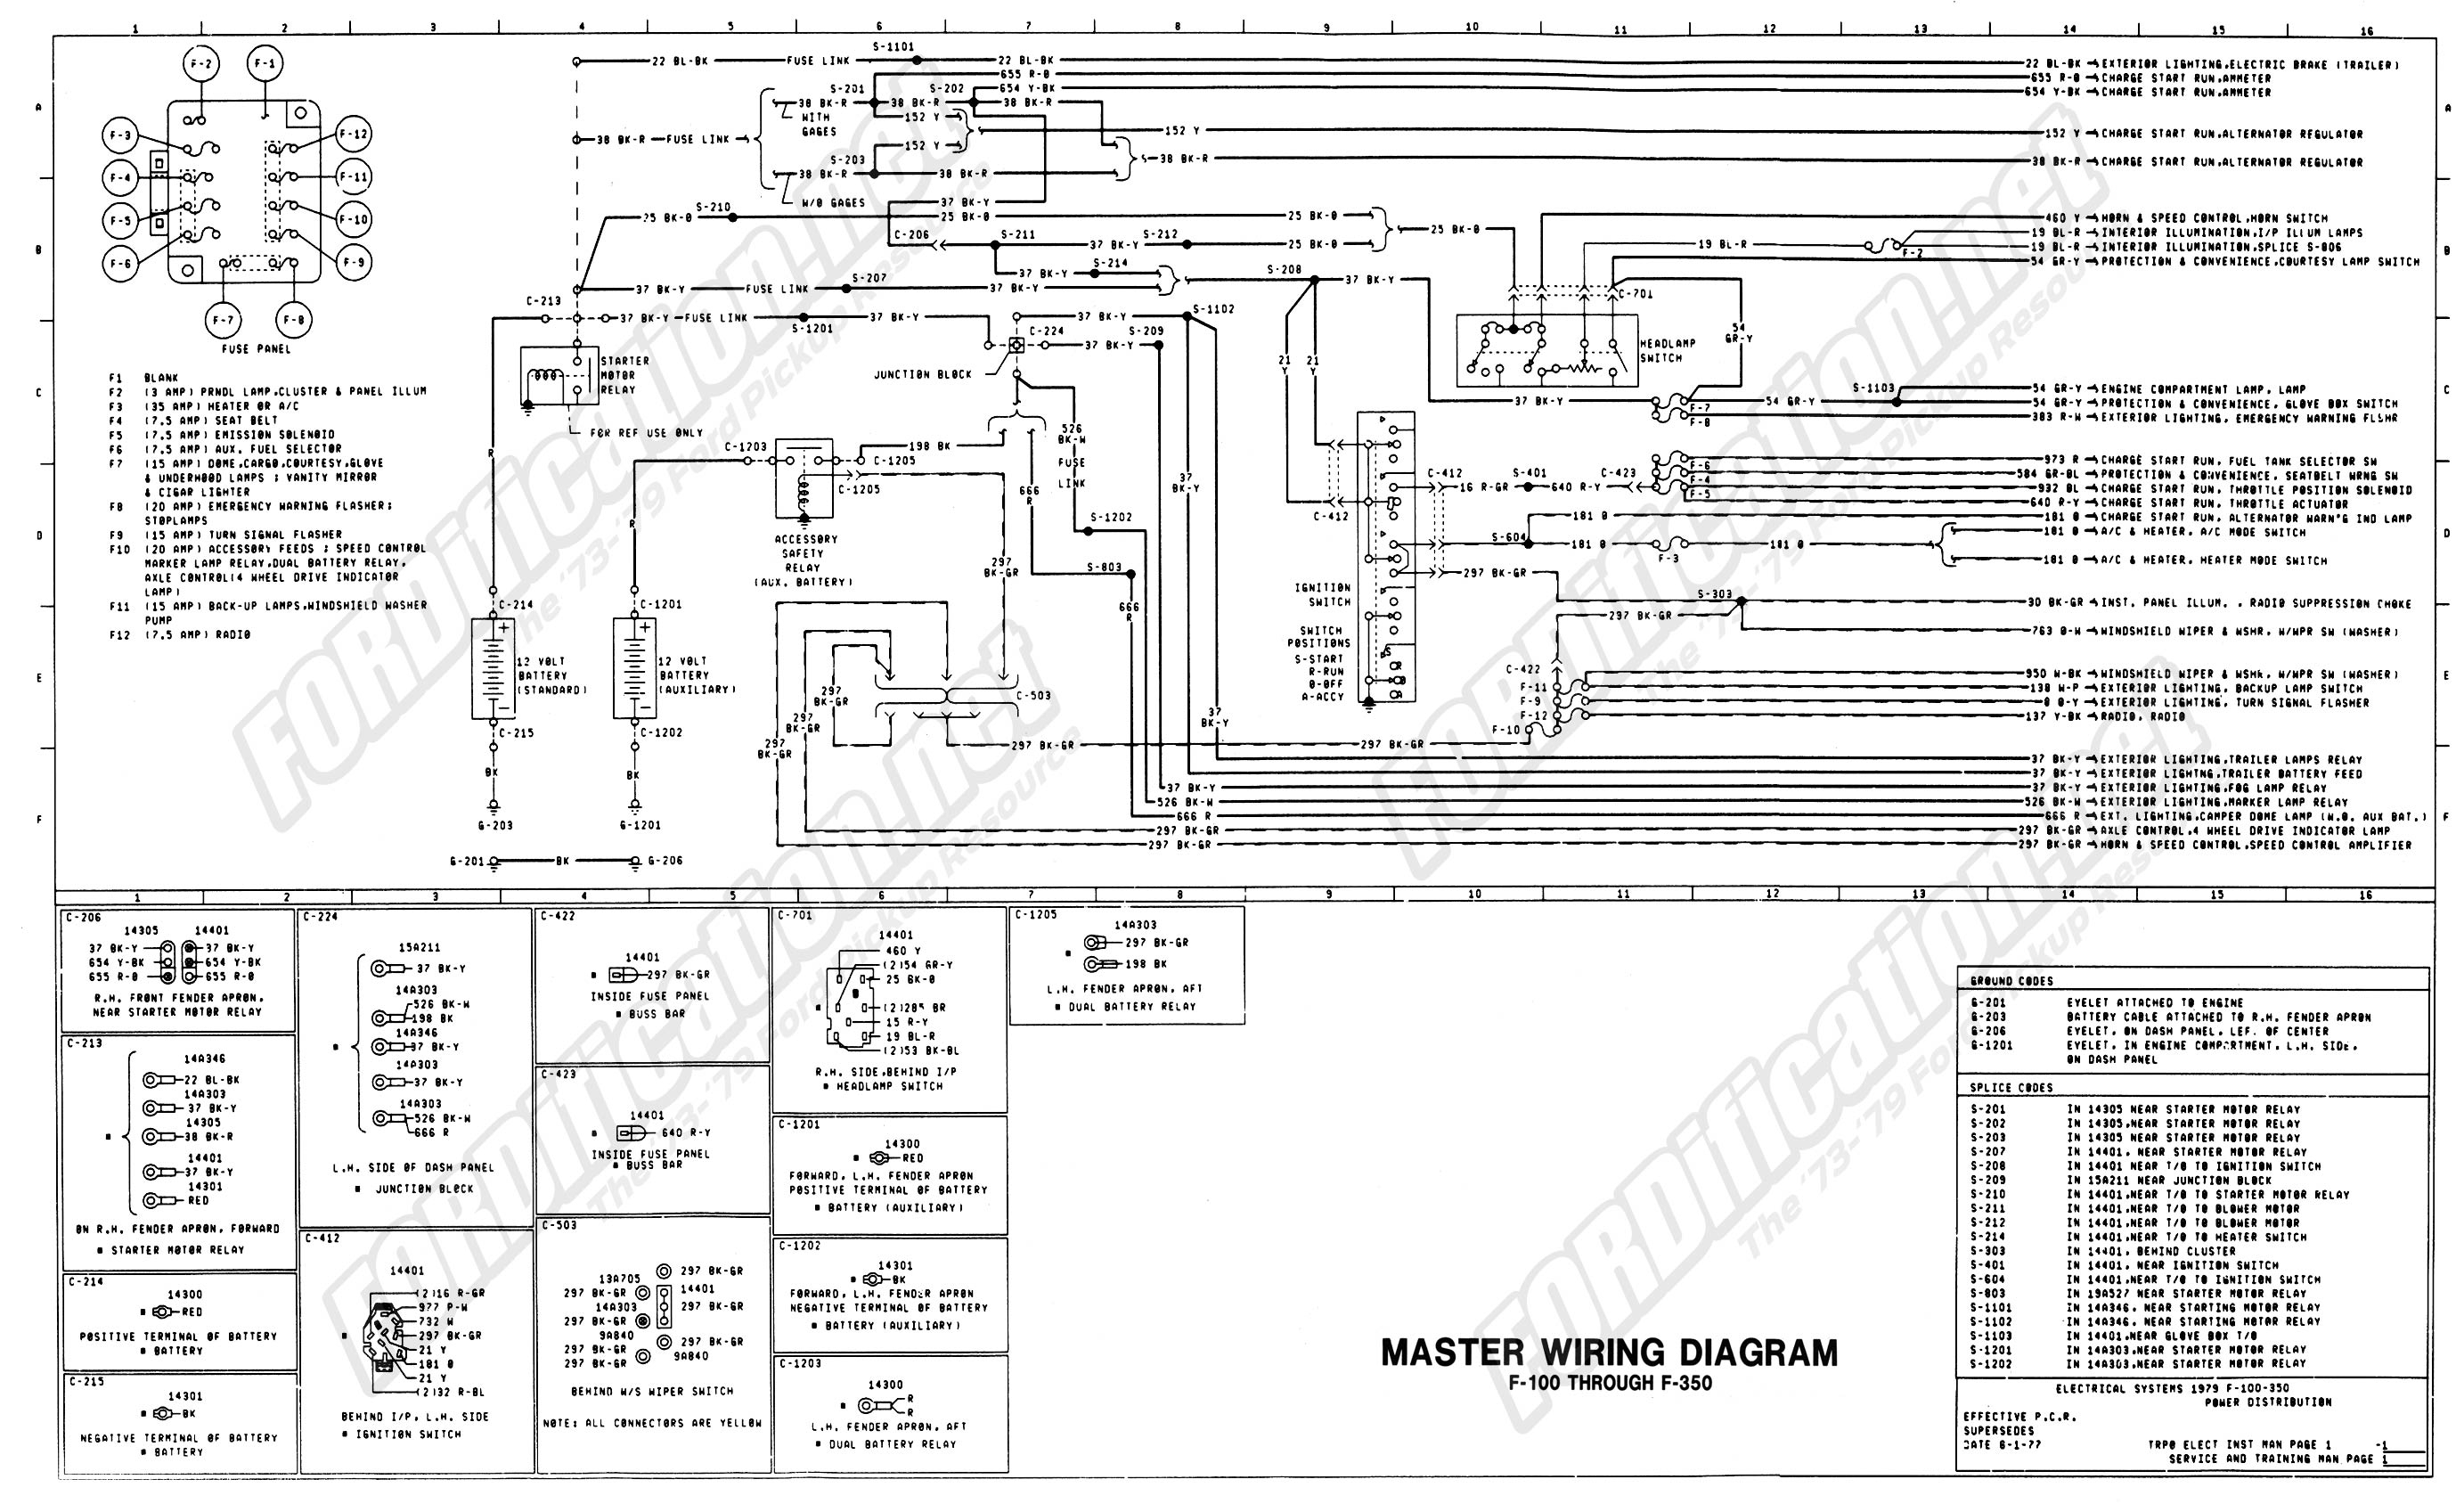 2001 international truck wiring diagrams international truck wiring diagram | free wiring diagram